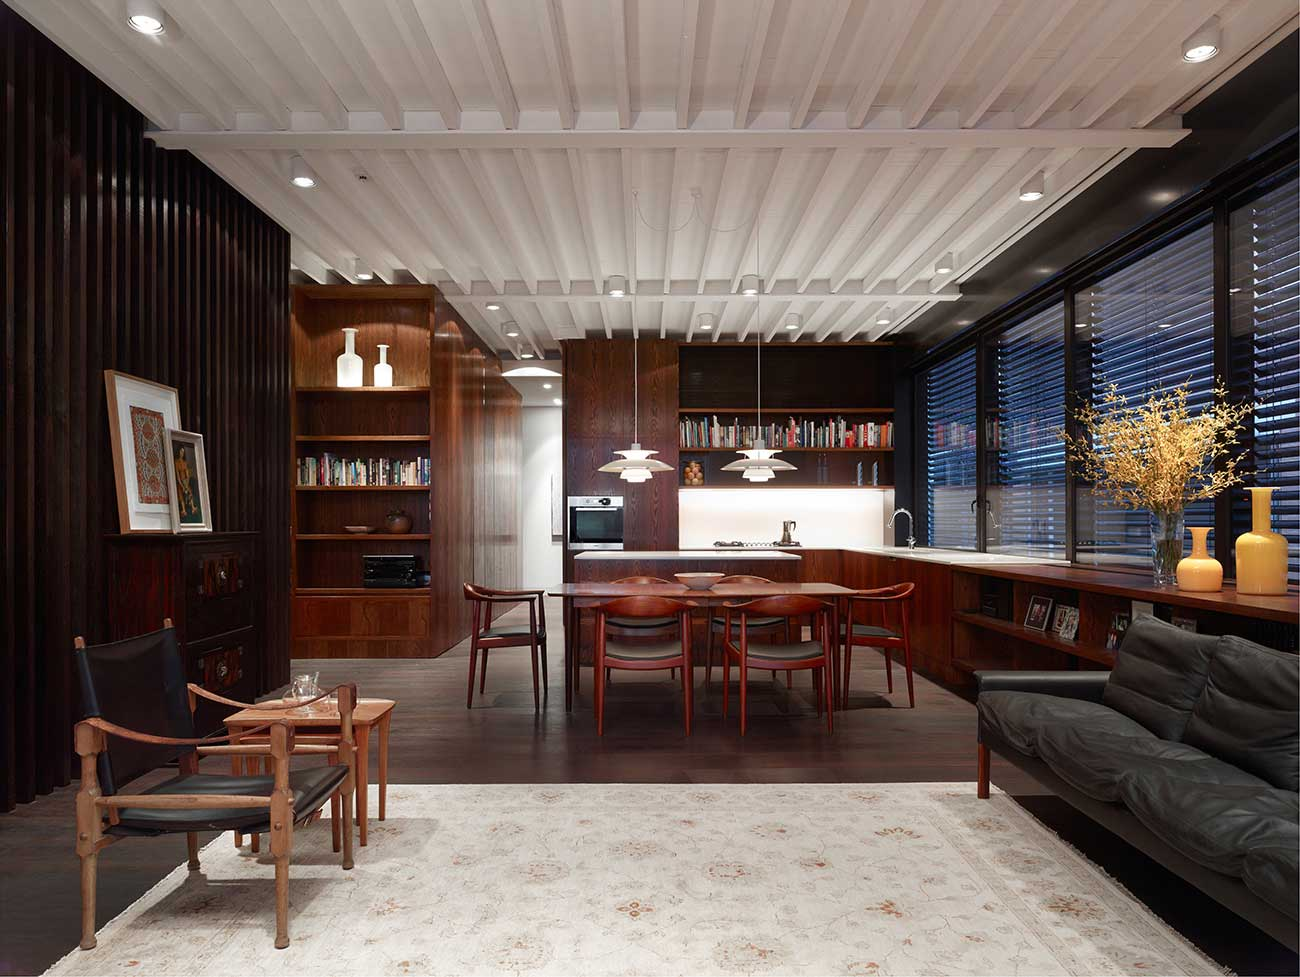 Macarthur Place by Layan Design. Peter Clarke Photography | Yellowtrace